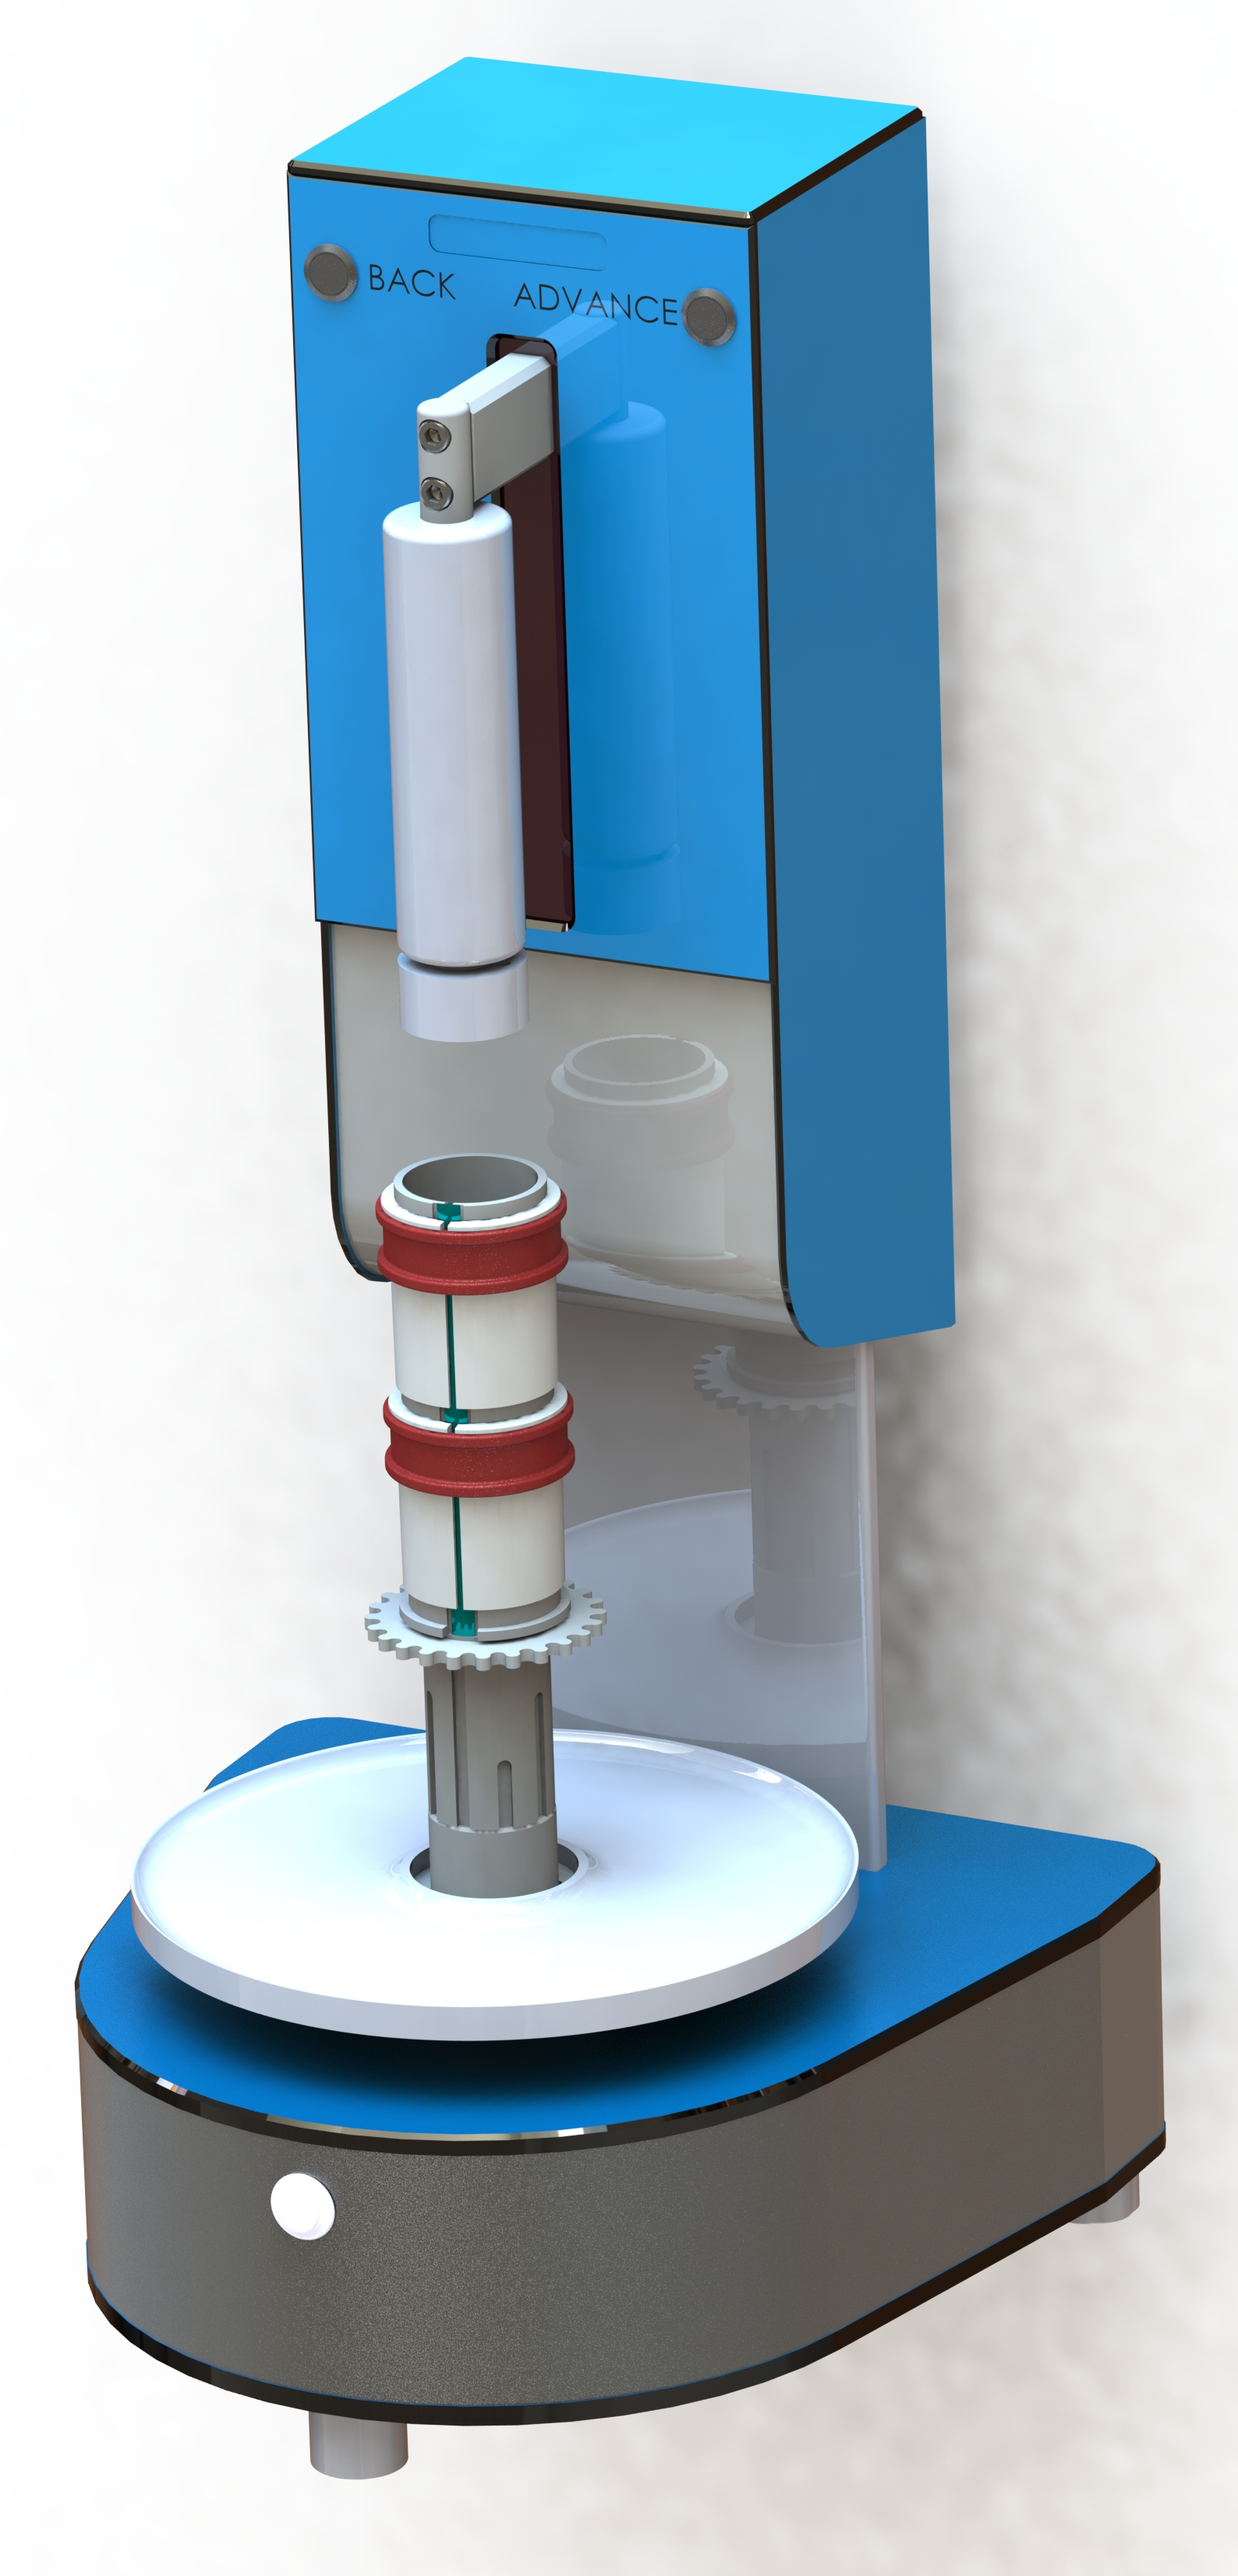 The Uniaxial Powder Tester innovatively measures unconfined yield strength(σc), and is ideal for simple, easy-to-interpret, low cost industrial testing.